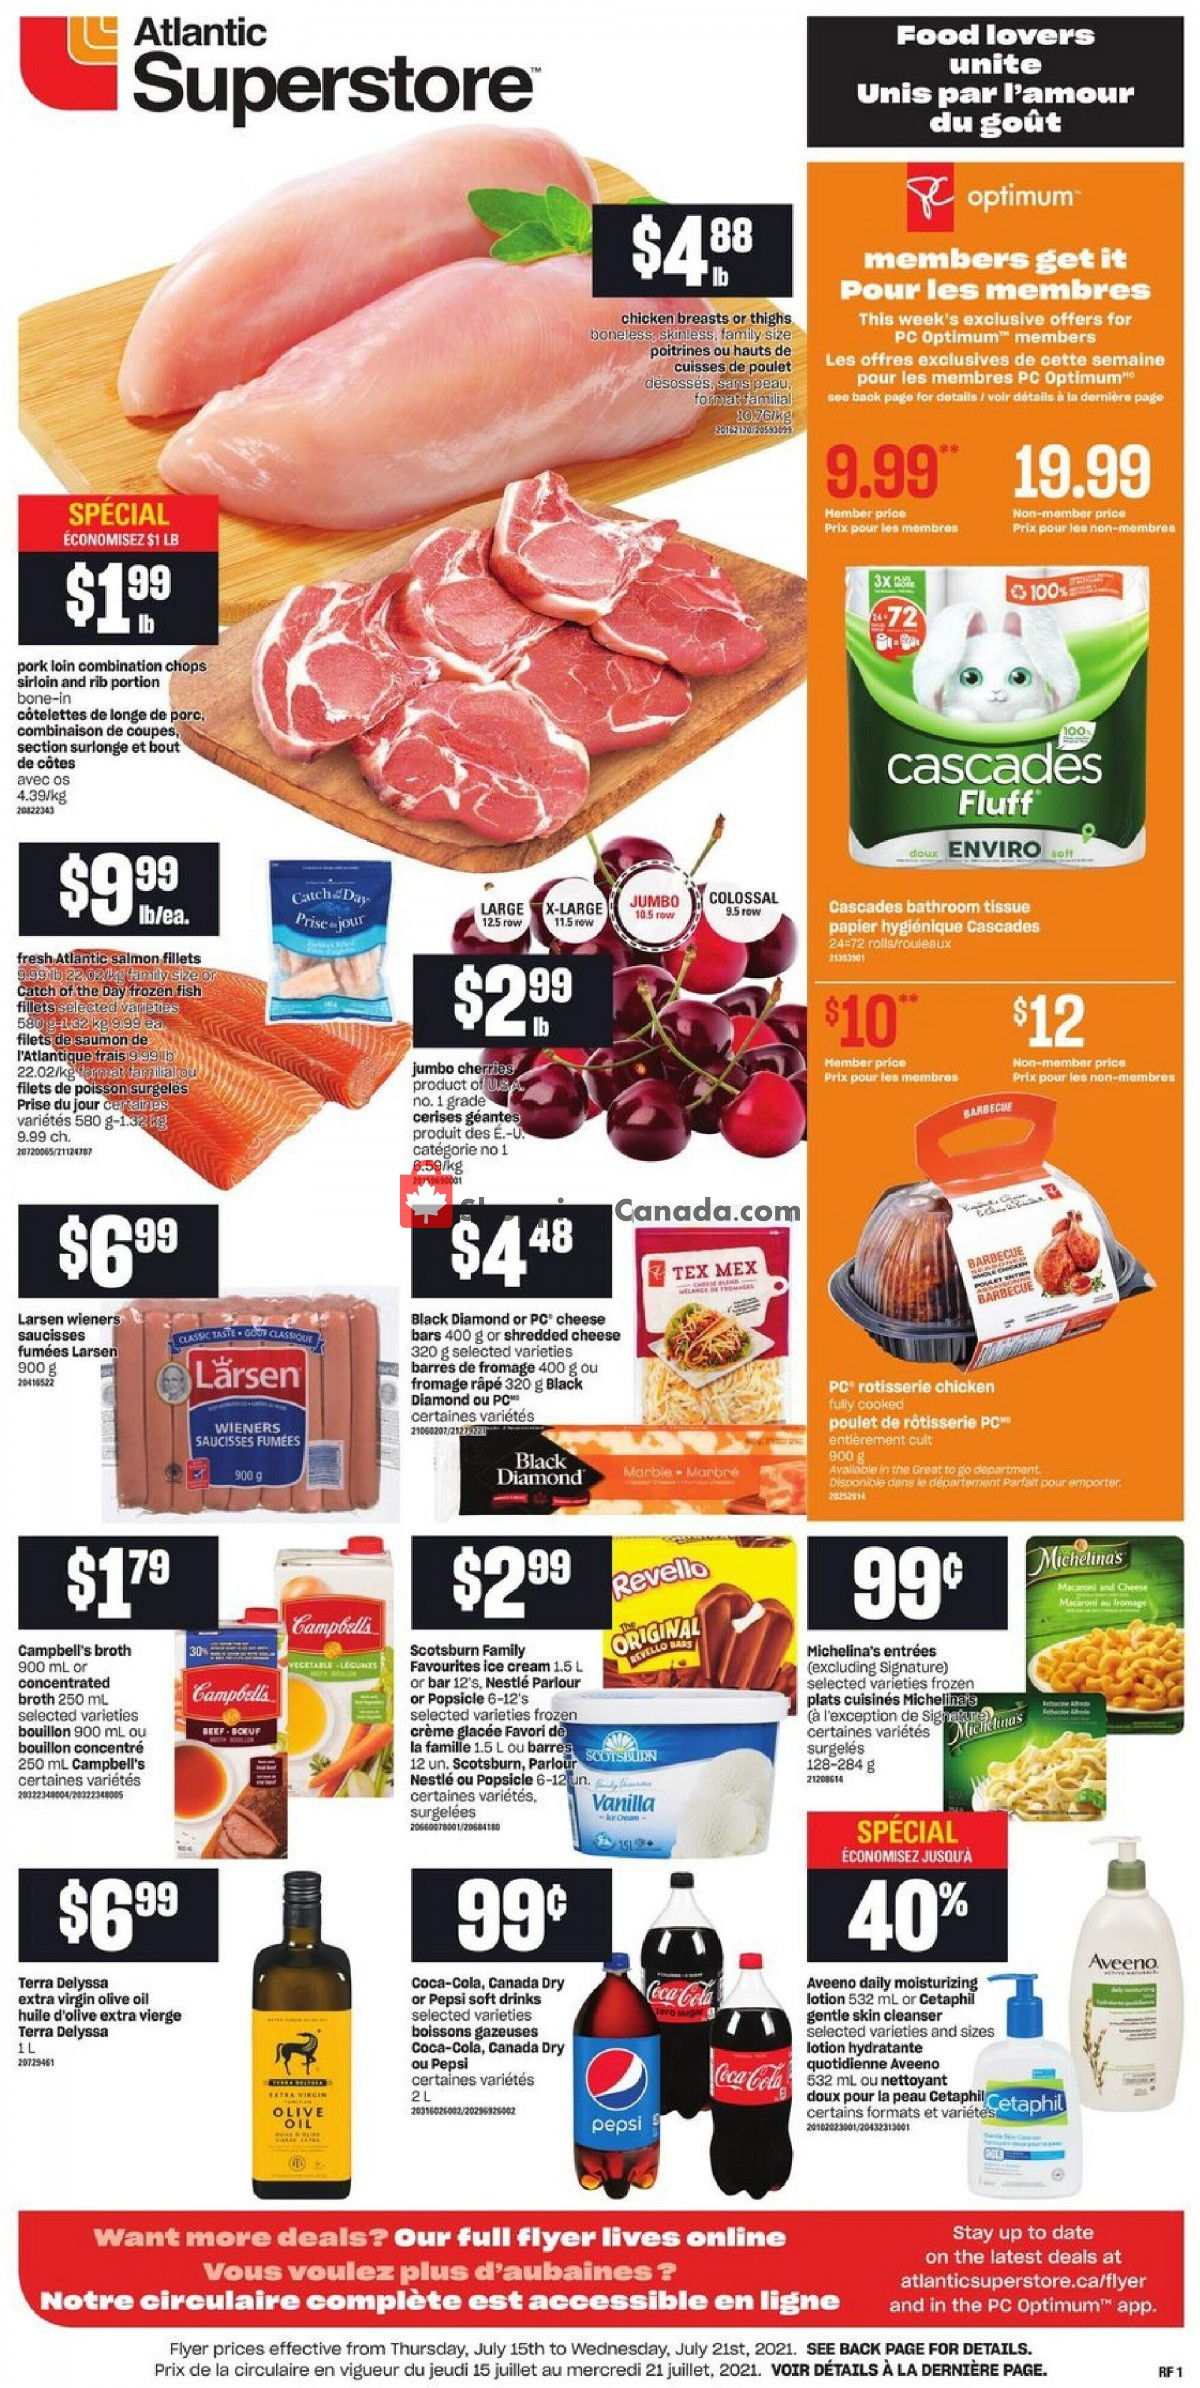 Flyer Atlantic Superstore Canada - from Thursday July 15, 2021 to Wednesday July 21, 2021